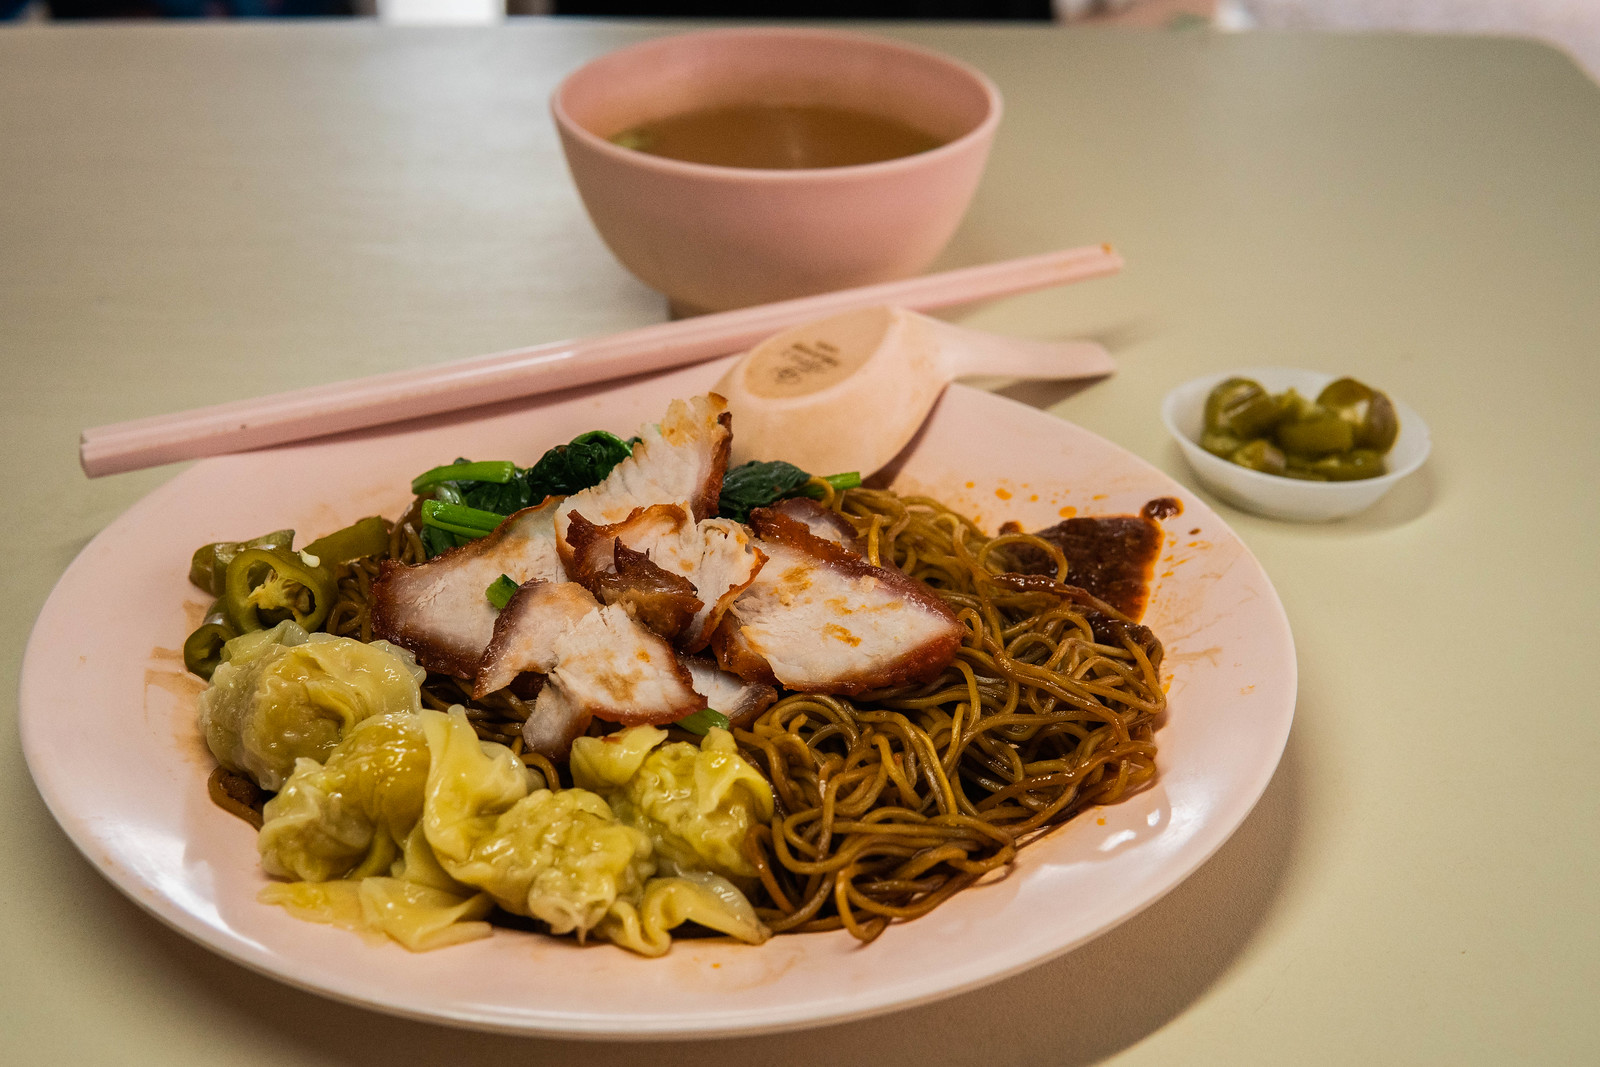 A plate of wantan noodles from Zhenguang Wantan Noodles